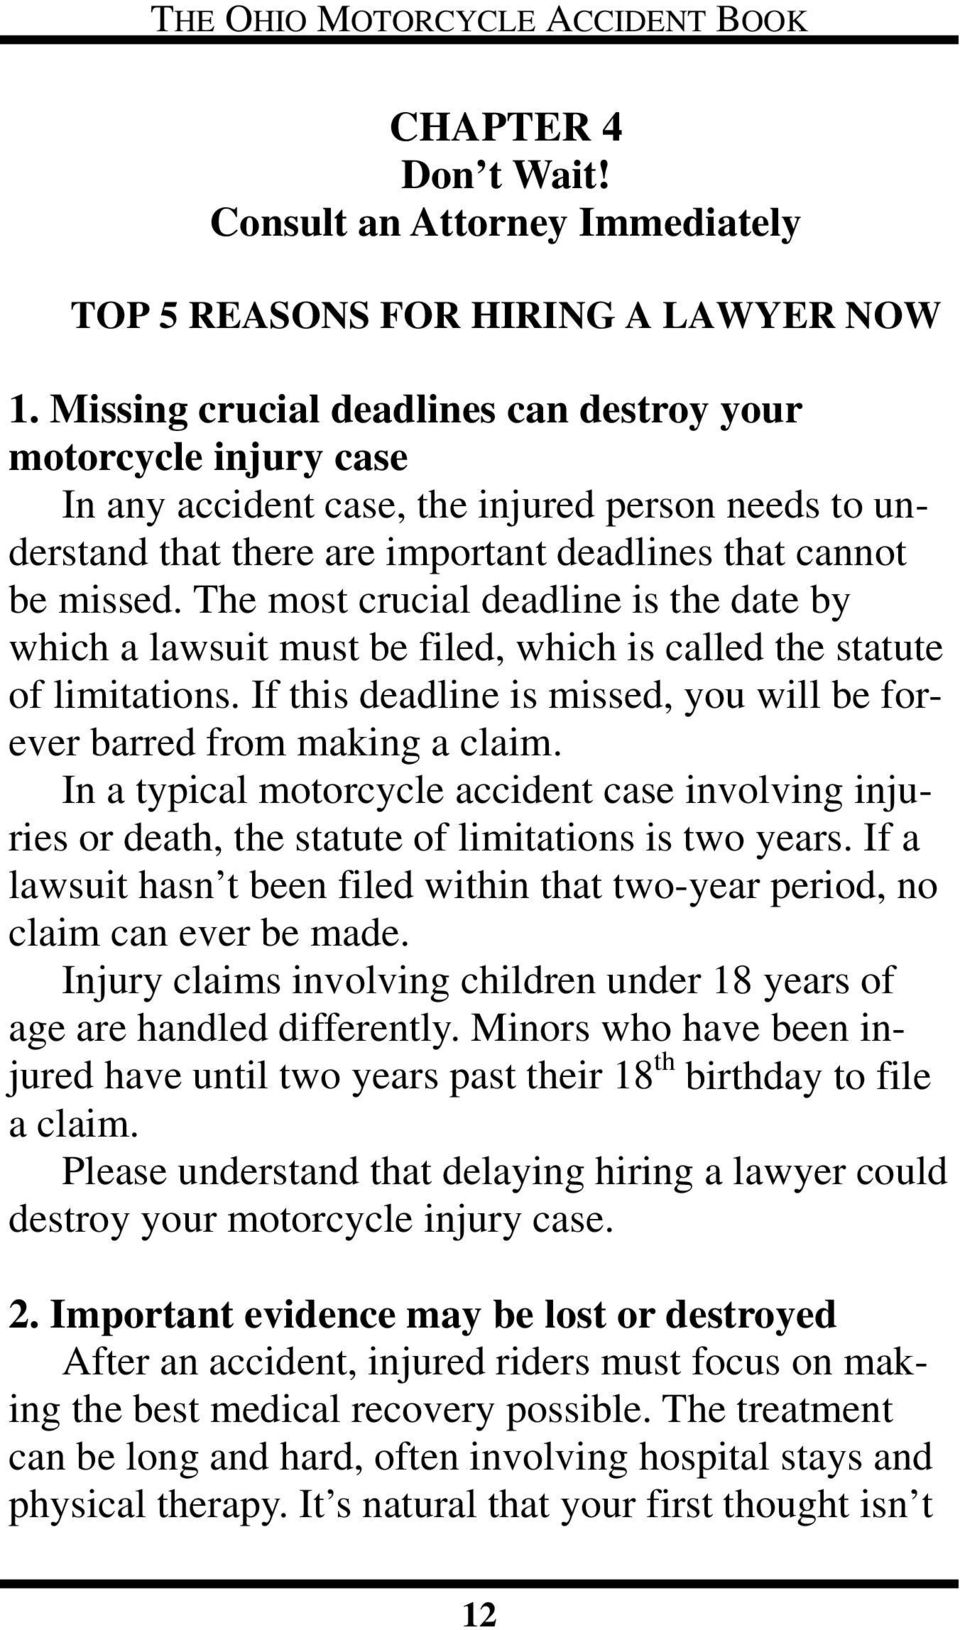 The most crucial deadline is the date by which a lawsuit must be filed, which is called the statute of limitations. If this deadline is missed, you will be forever barred from making a claim.